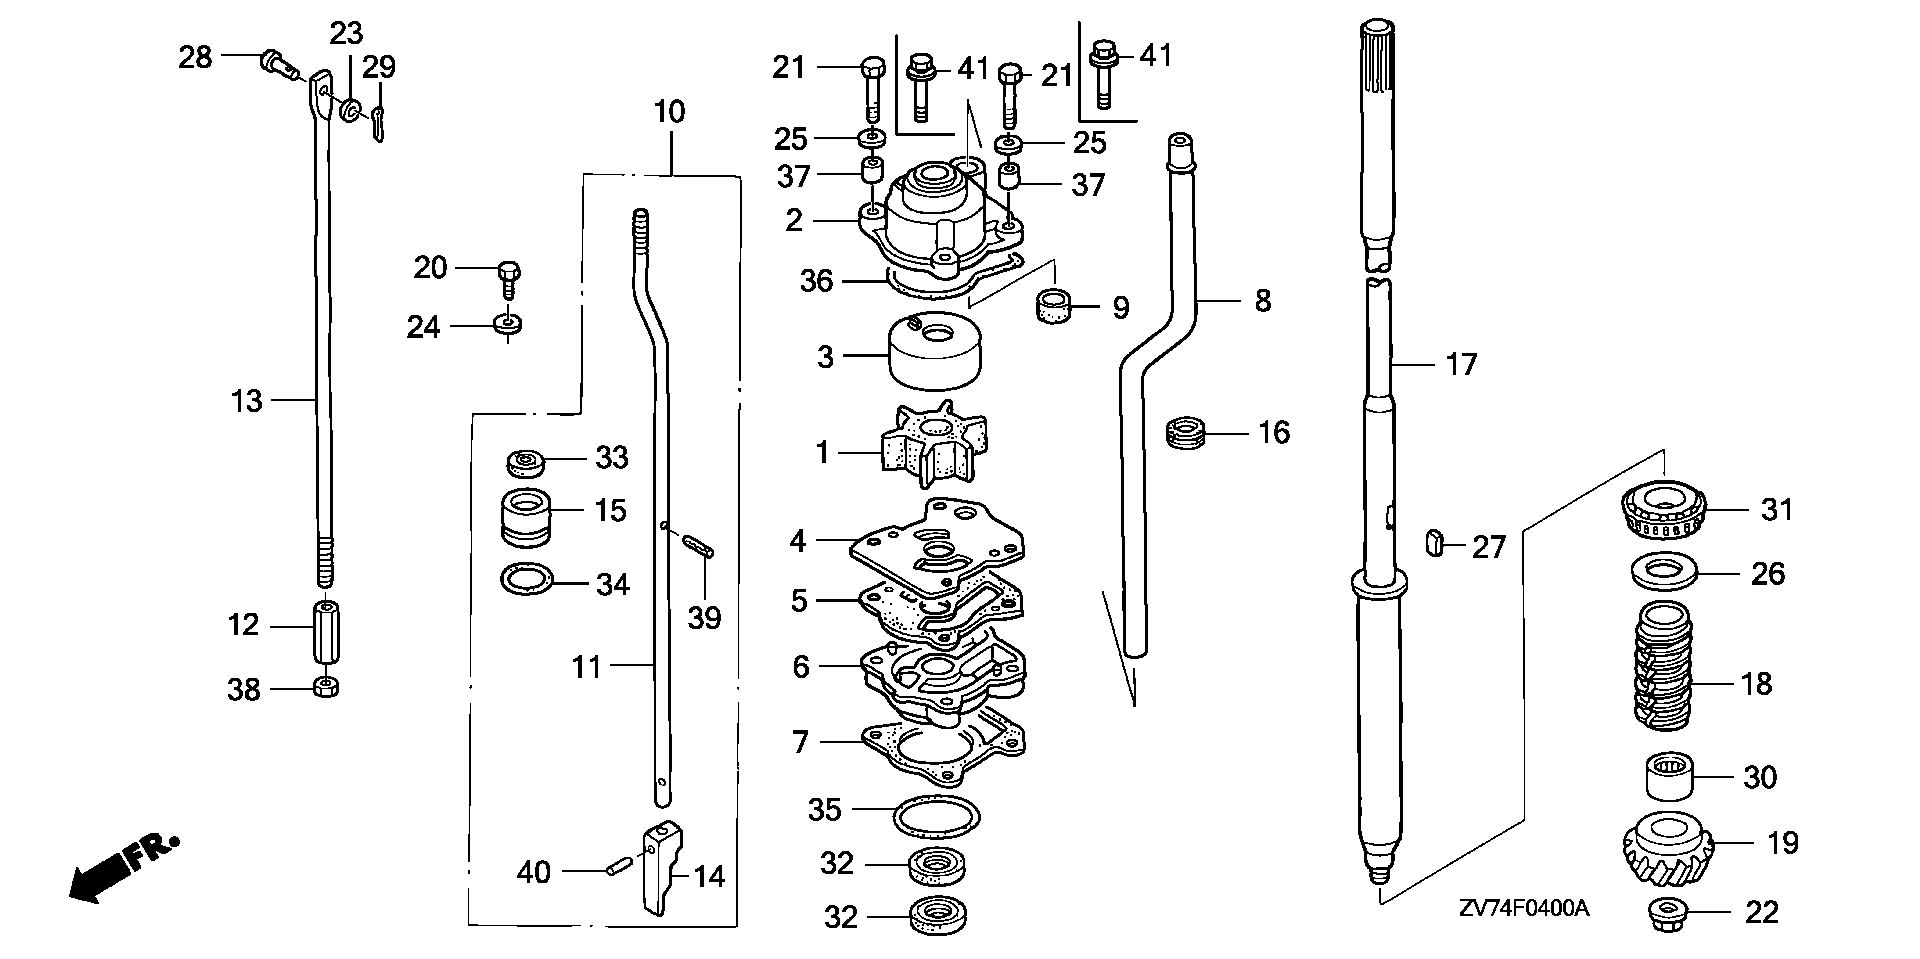 60 Hp Mercury Outboard Parts Diagram